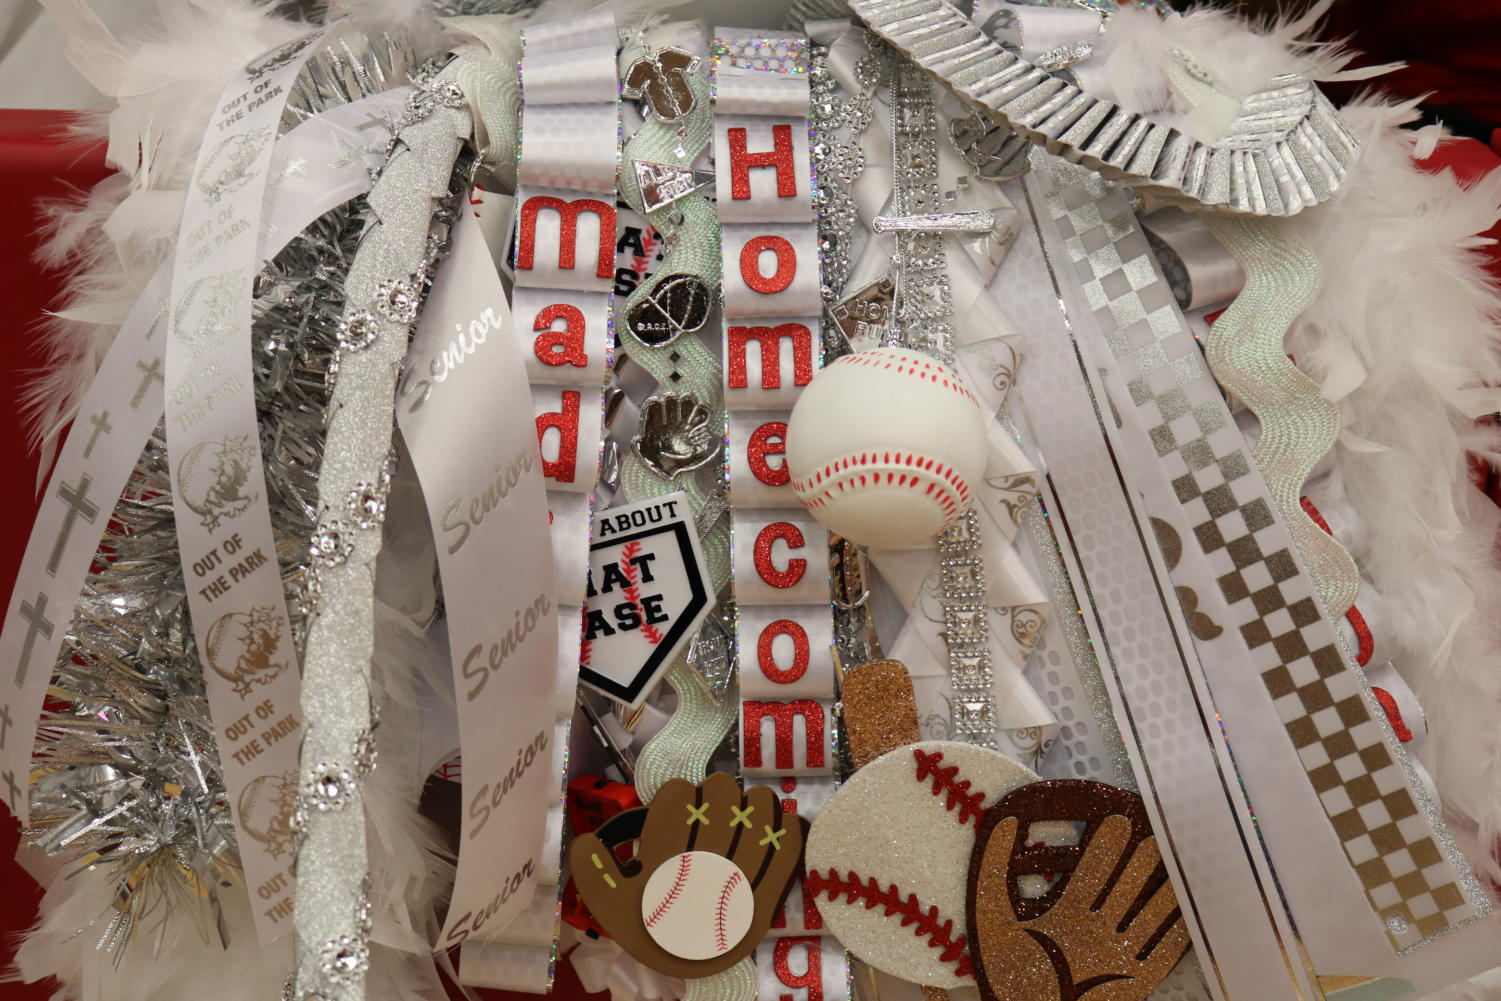 One of Texas's homecoming traditions is the use of mums, which a boy gets his date before the homecoming dance. The Coppell High School homecoming dance is Sept. 29 from 7-11 p.m.